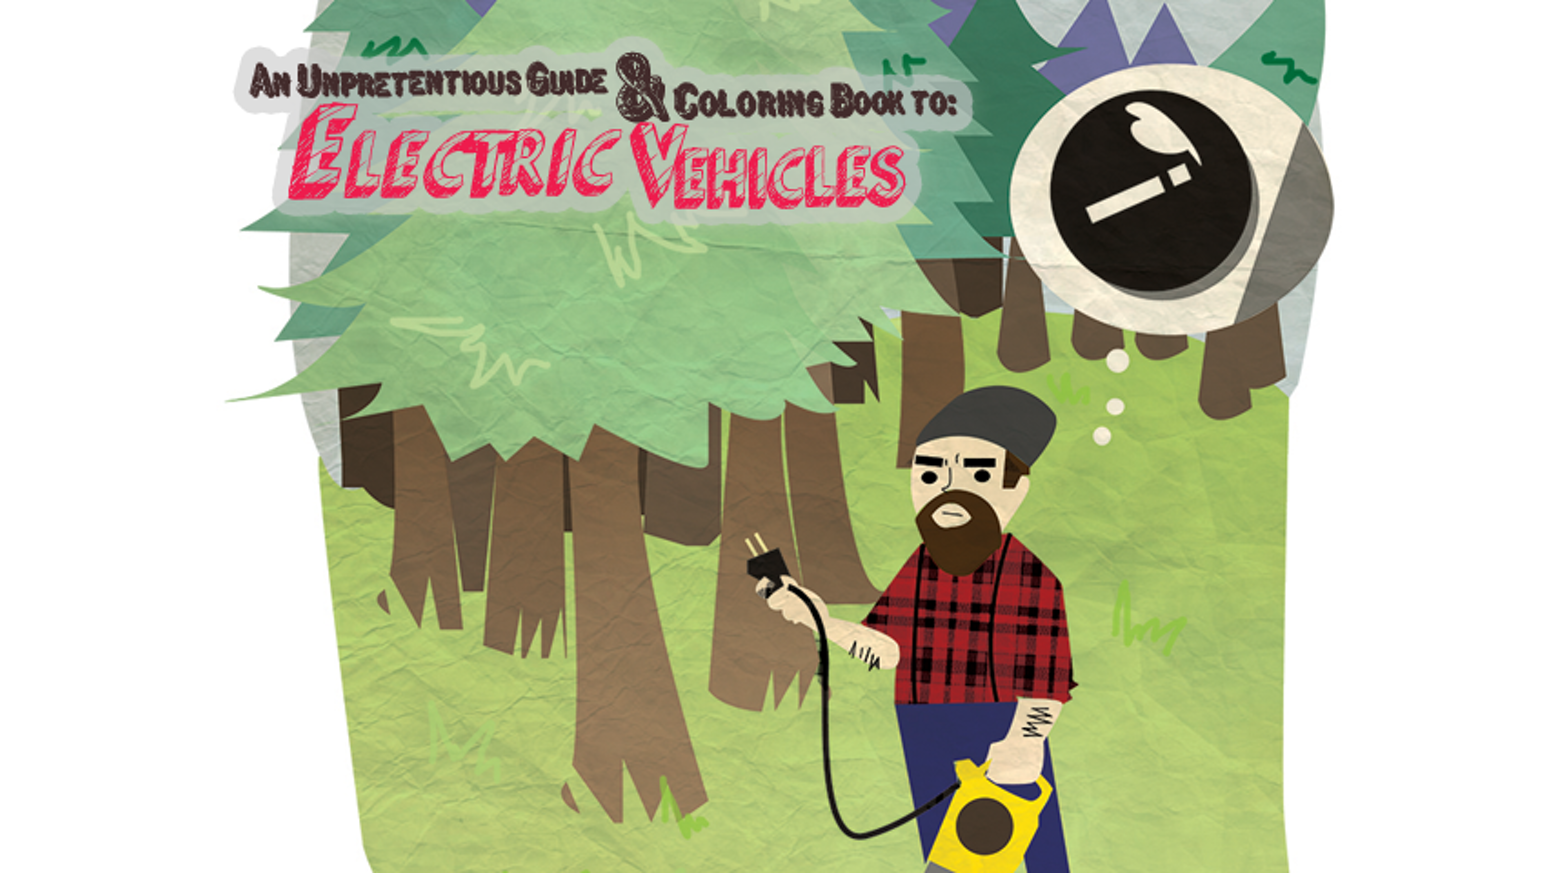 Coloring book with guide - An Unpretentious Guide Coloring Book To Electric Vehicles